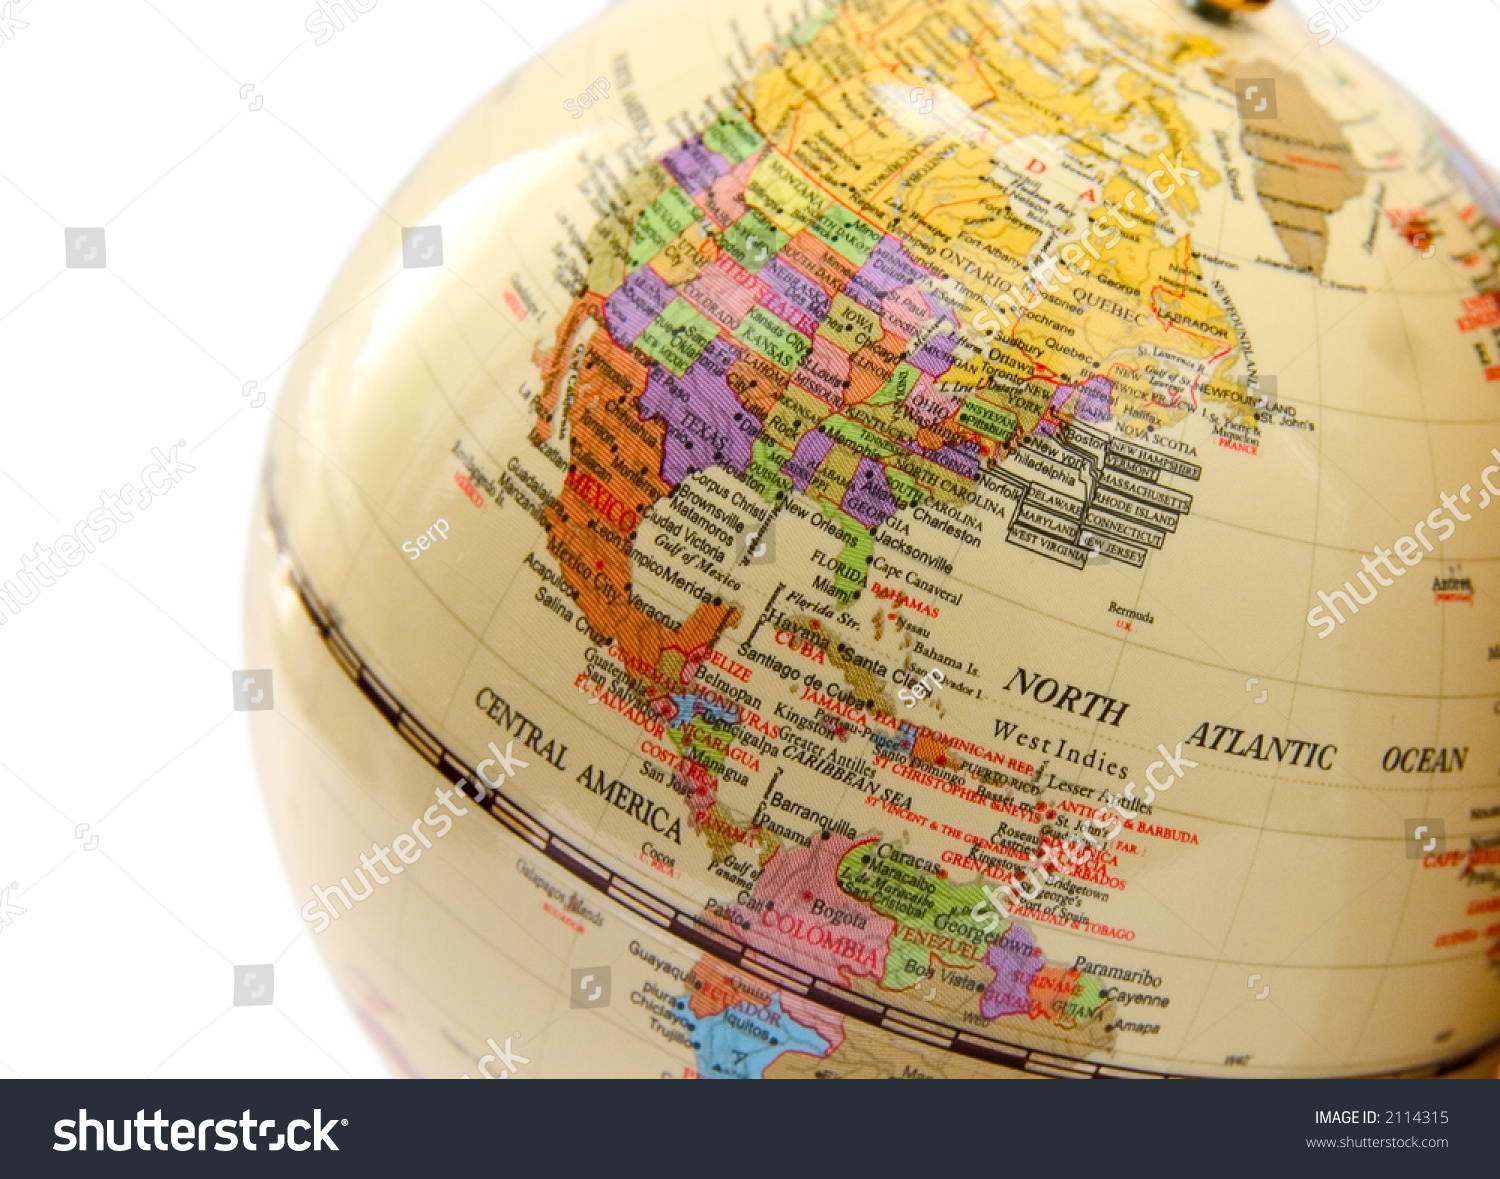 Map Of USA Canada Mexico TomTom Map Maps Globe Globes North Map - Usa canada mexico map